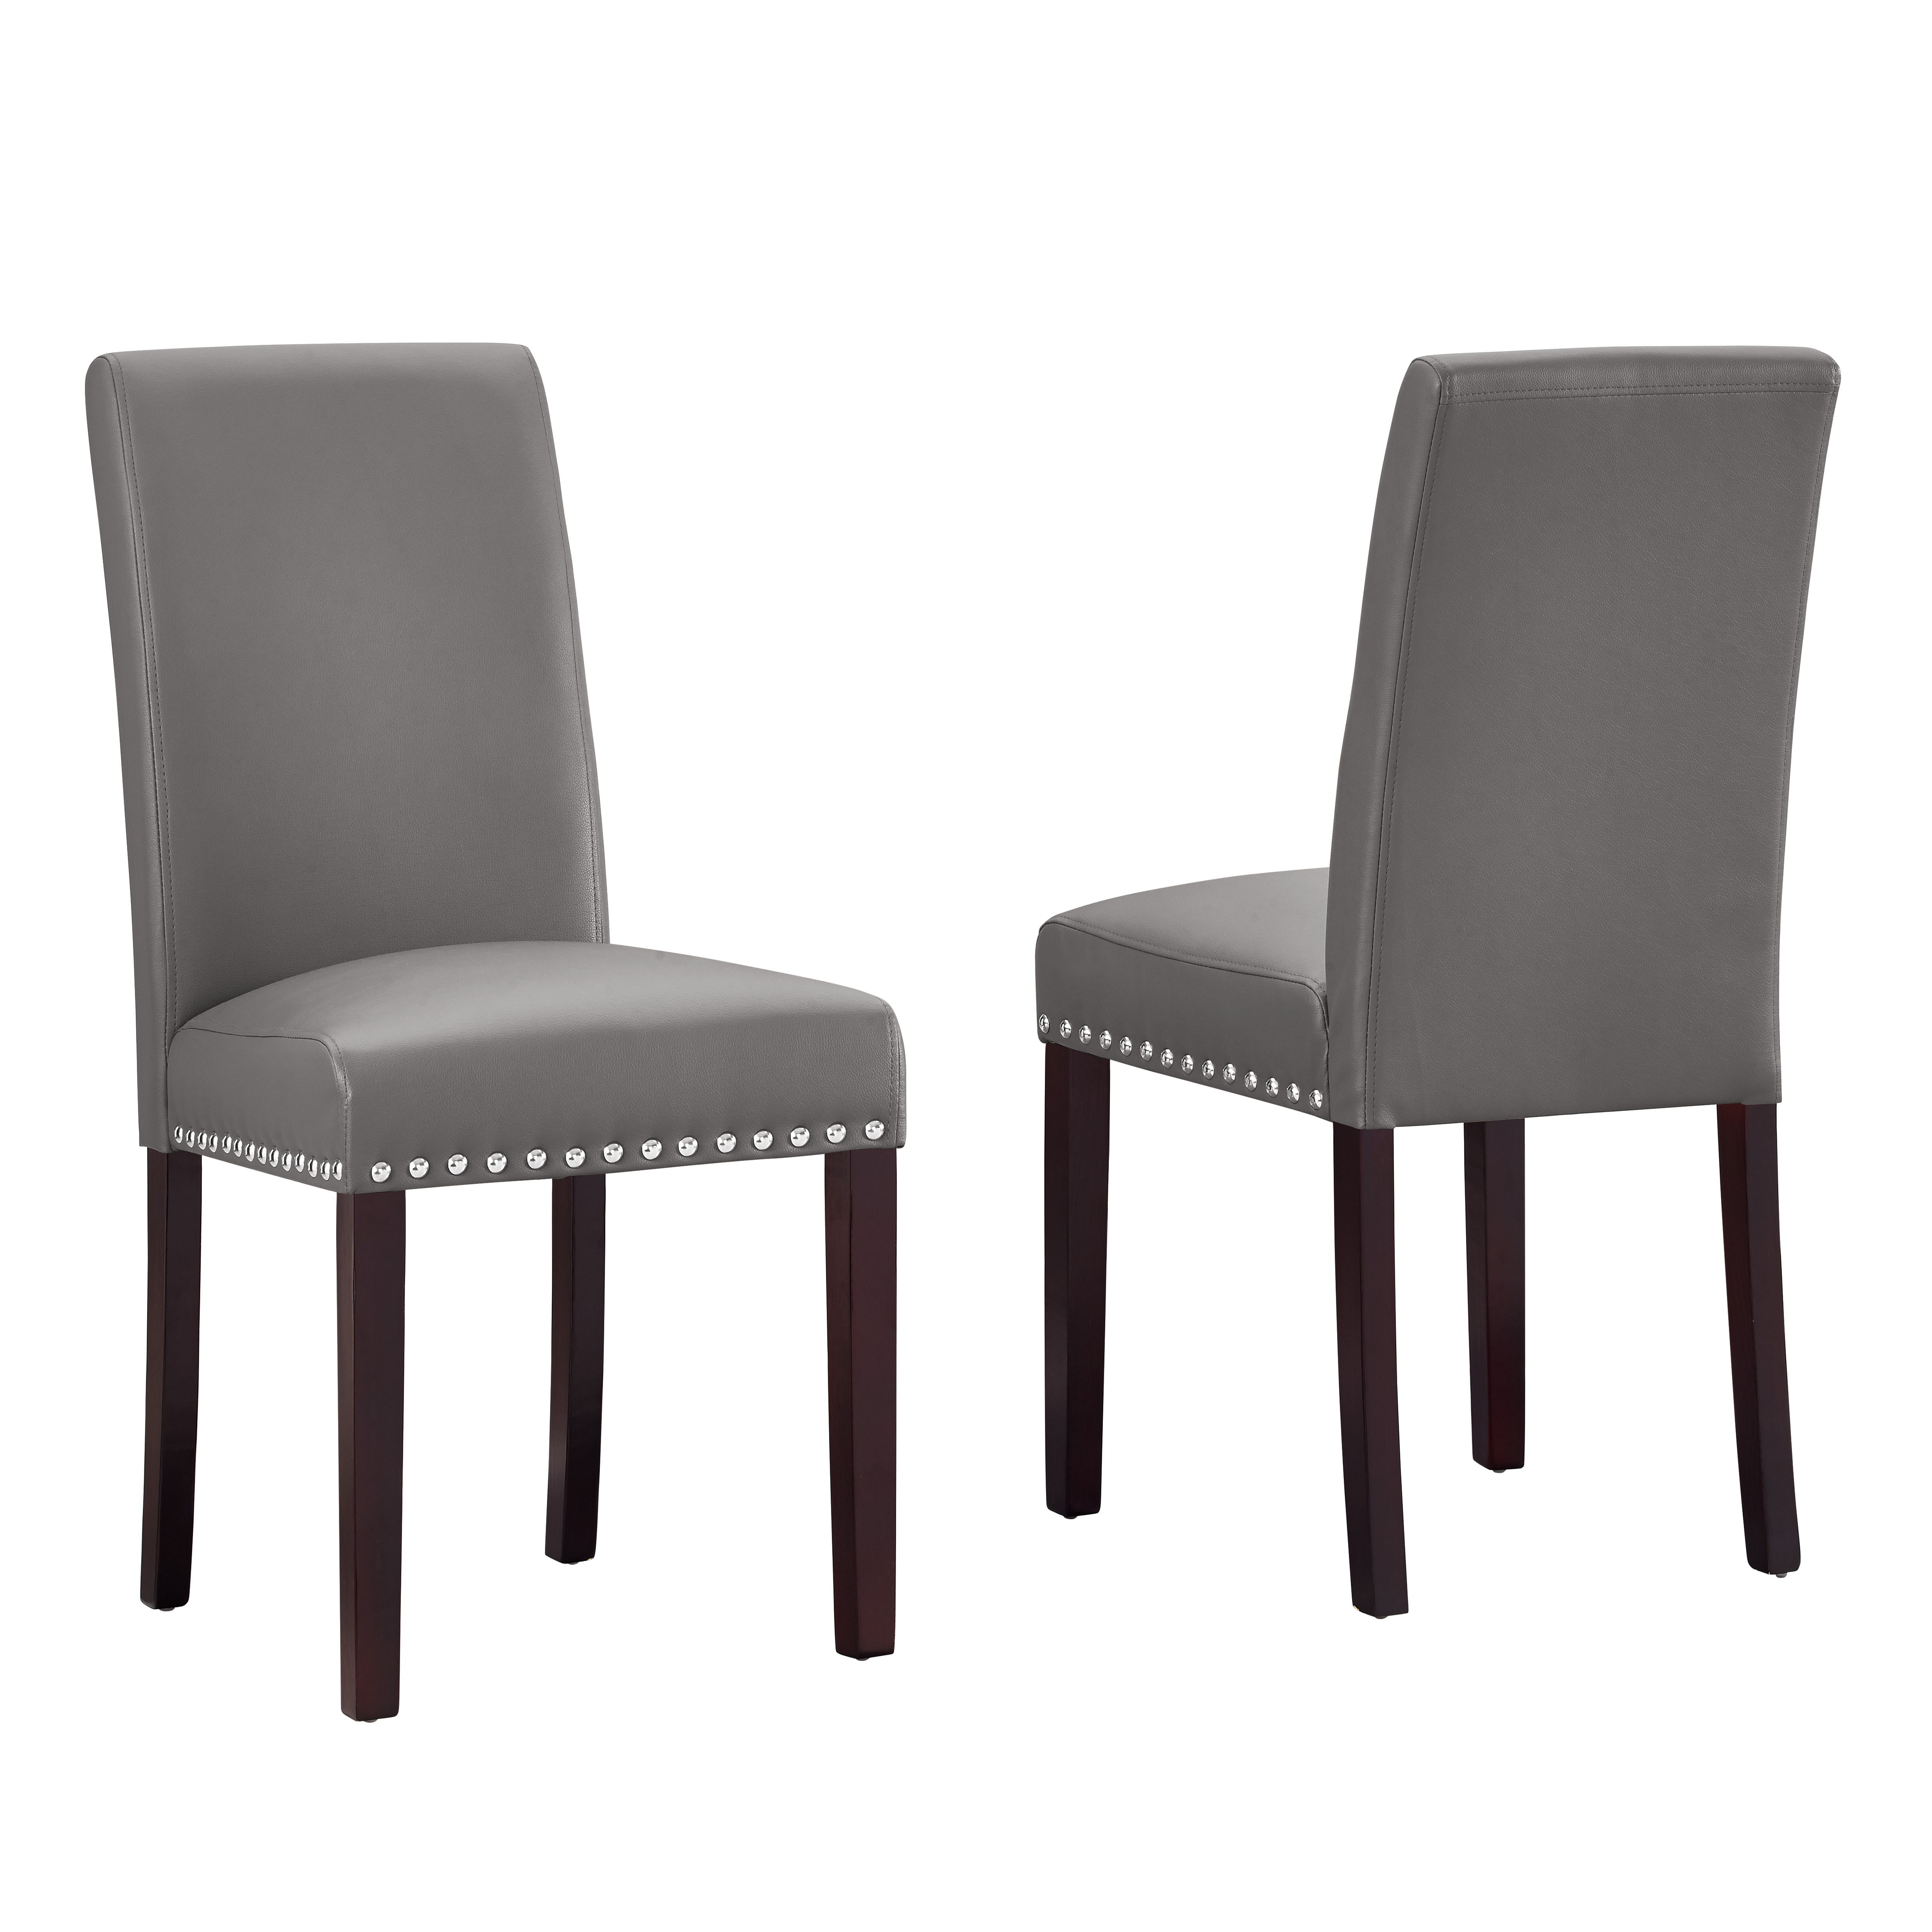 faux leather dining chairs wedding chair cover hire dublin dhi nice nail head 2 pack multiple colors walmart com